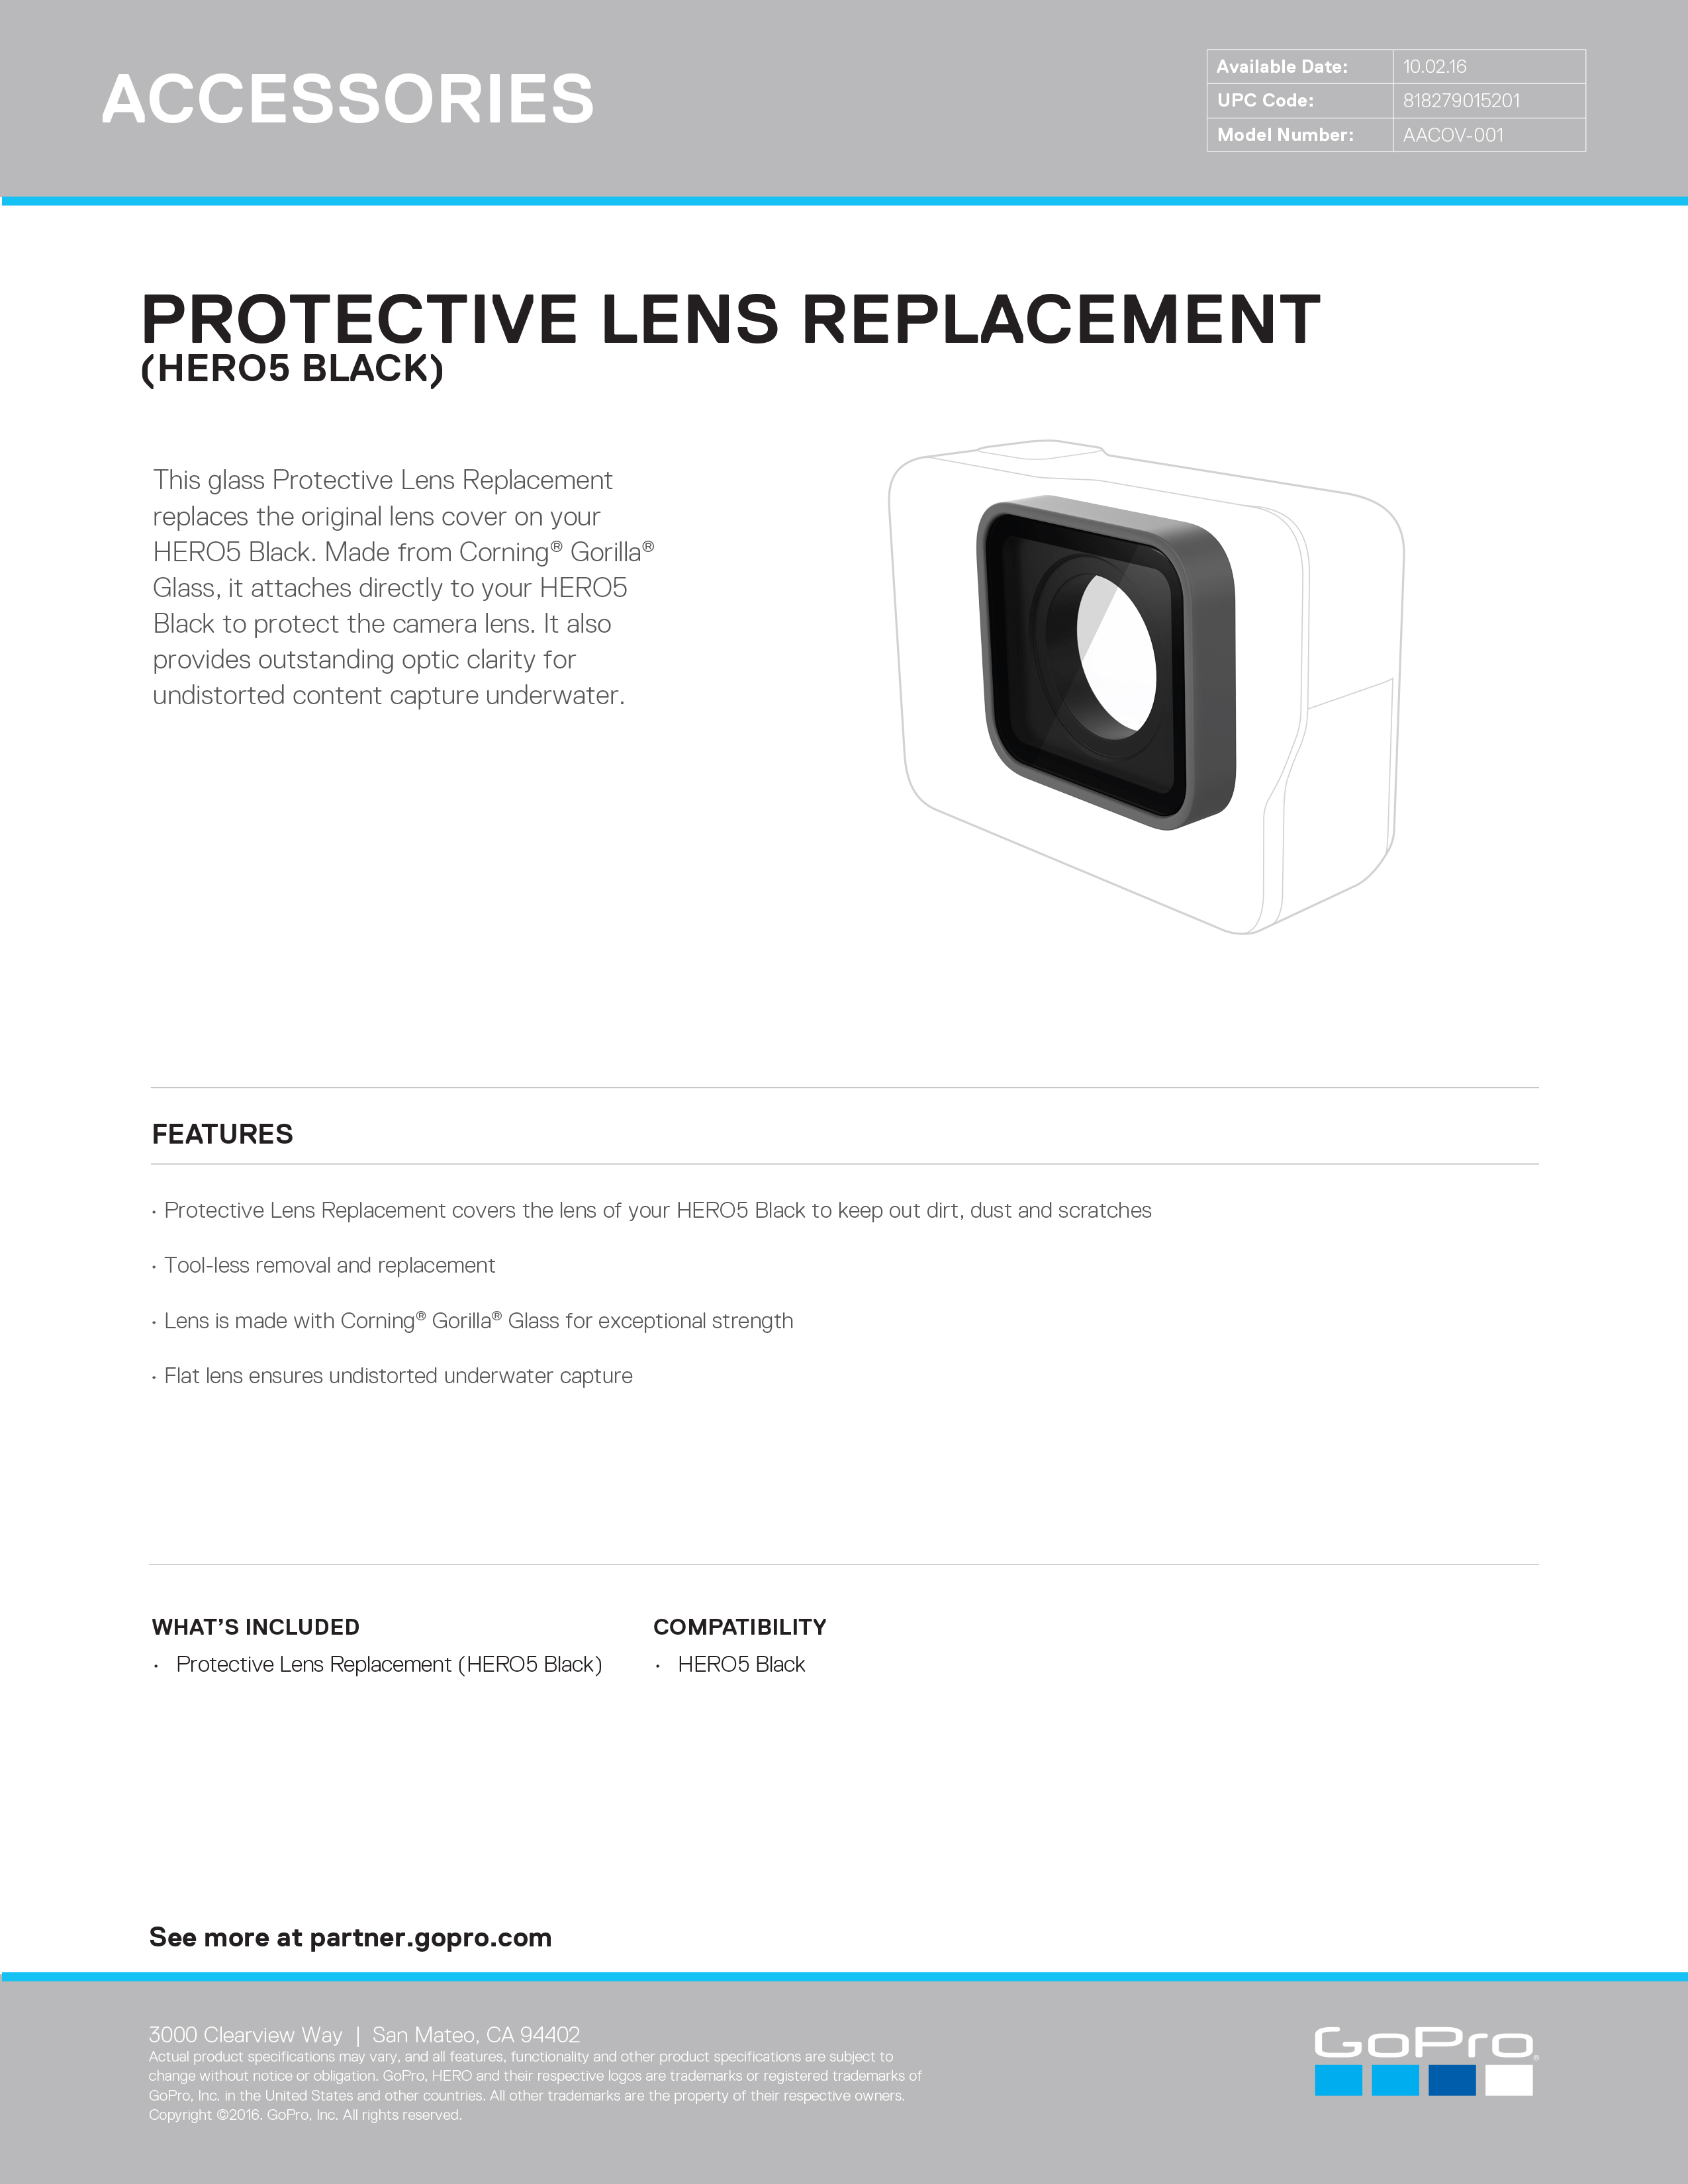 26605119 Protective Lens Replacement HERO5 Black Sell Sheet master